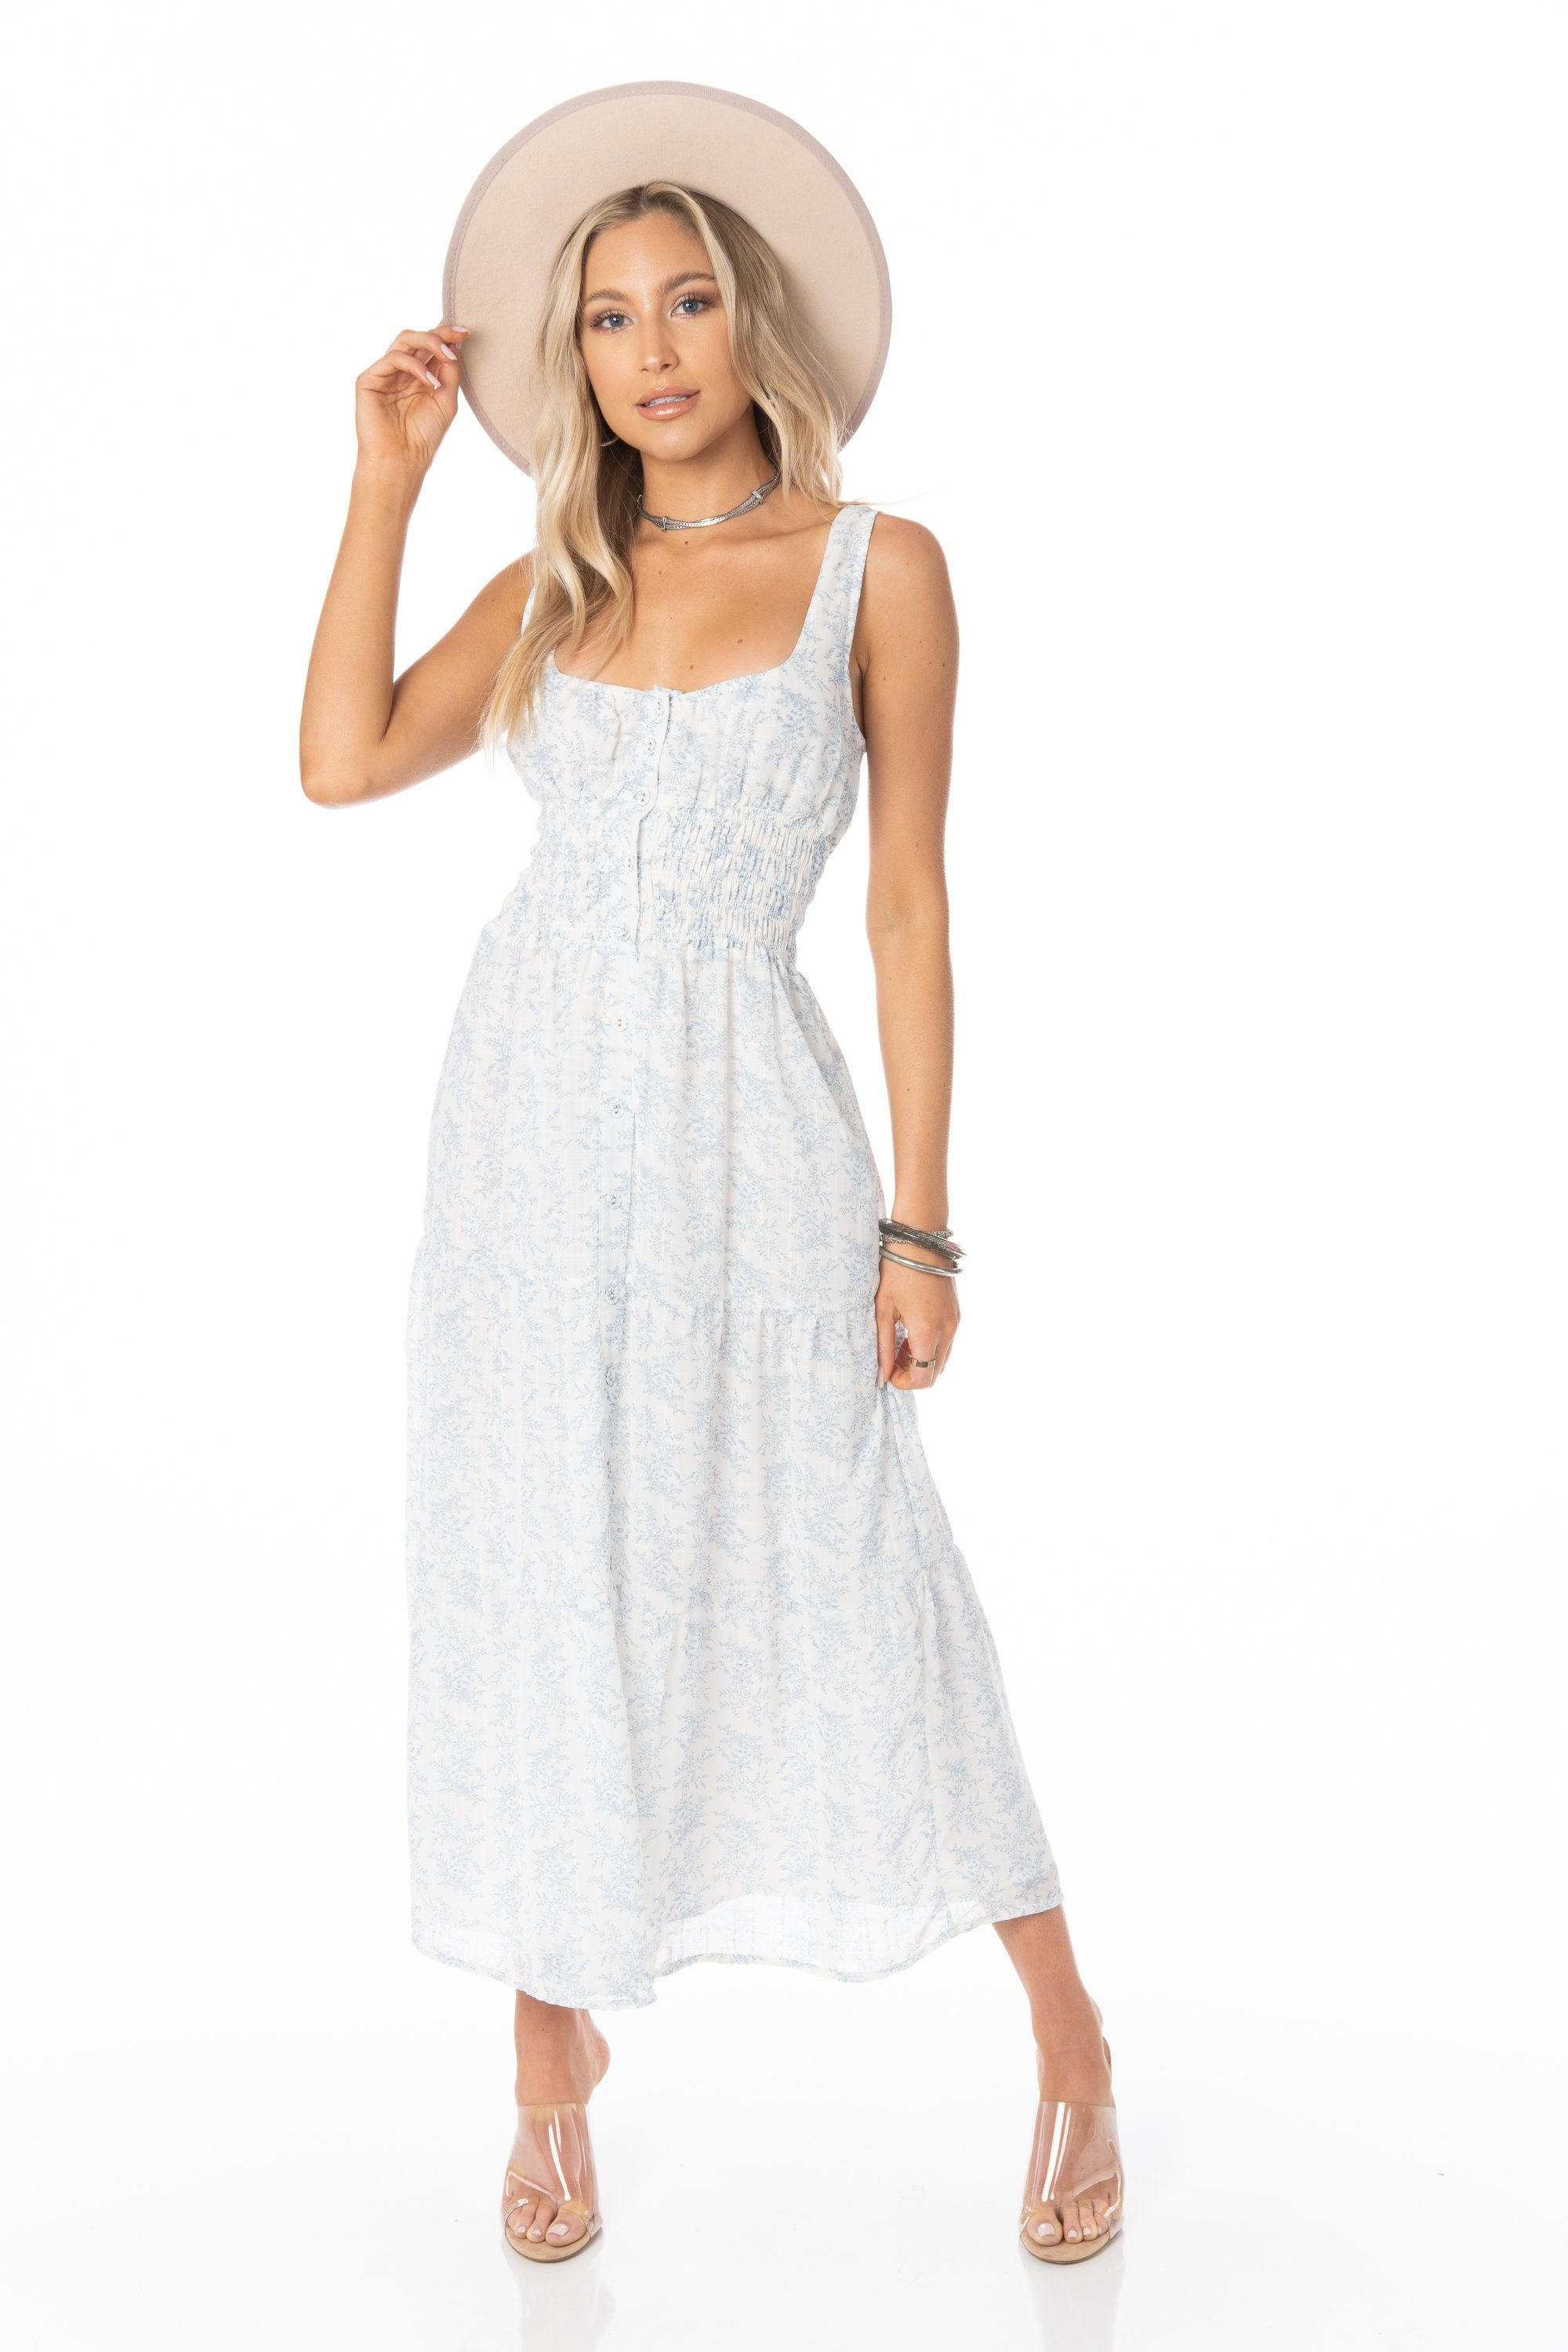 Wildflower White Blue Midi Dress - FINAL SALE Dresses HYPEACH BOUTIQUE